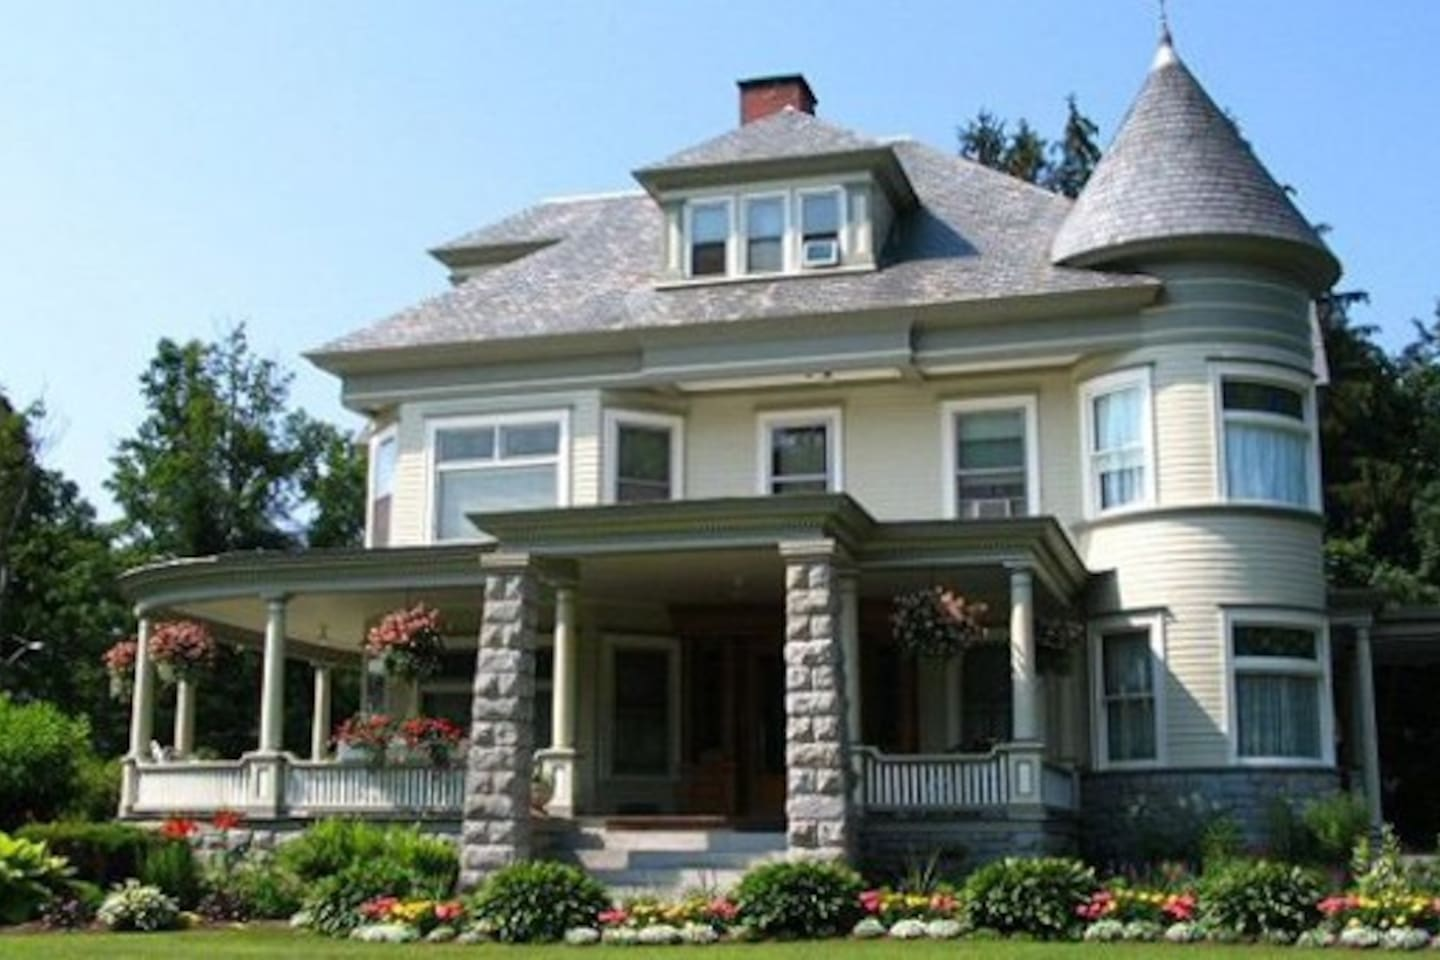 Cornerstone Victorian Bed and Breakfast is the home of the famous Five Course Gourmet Breakfast.  Daily homemade dessert available with complimentary beverage pantry.  In the heart of the Adirondacks, close to Lake George, Saratoga, & Gore Mountain.